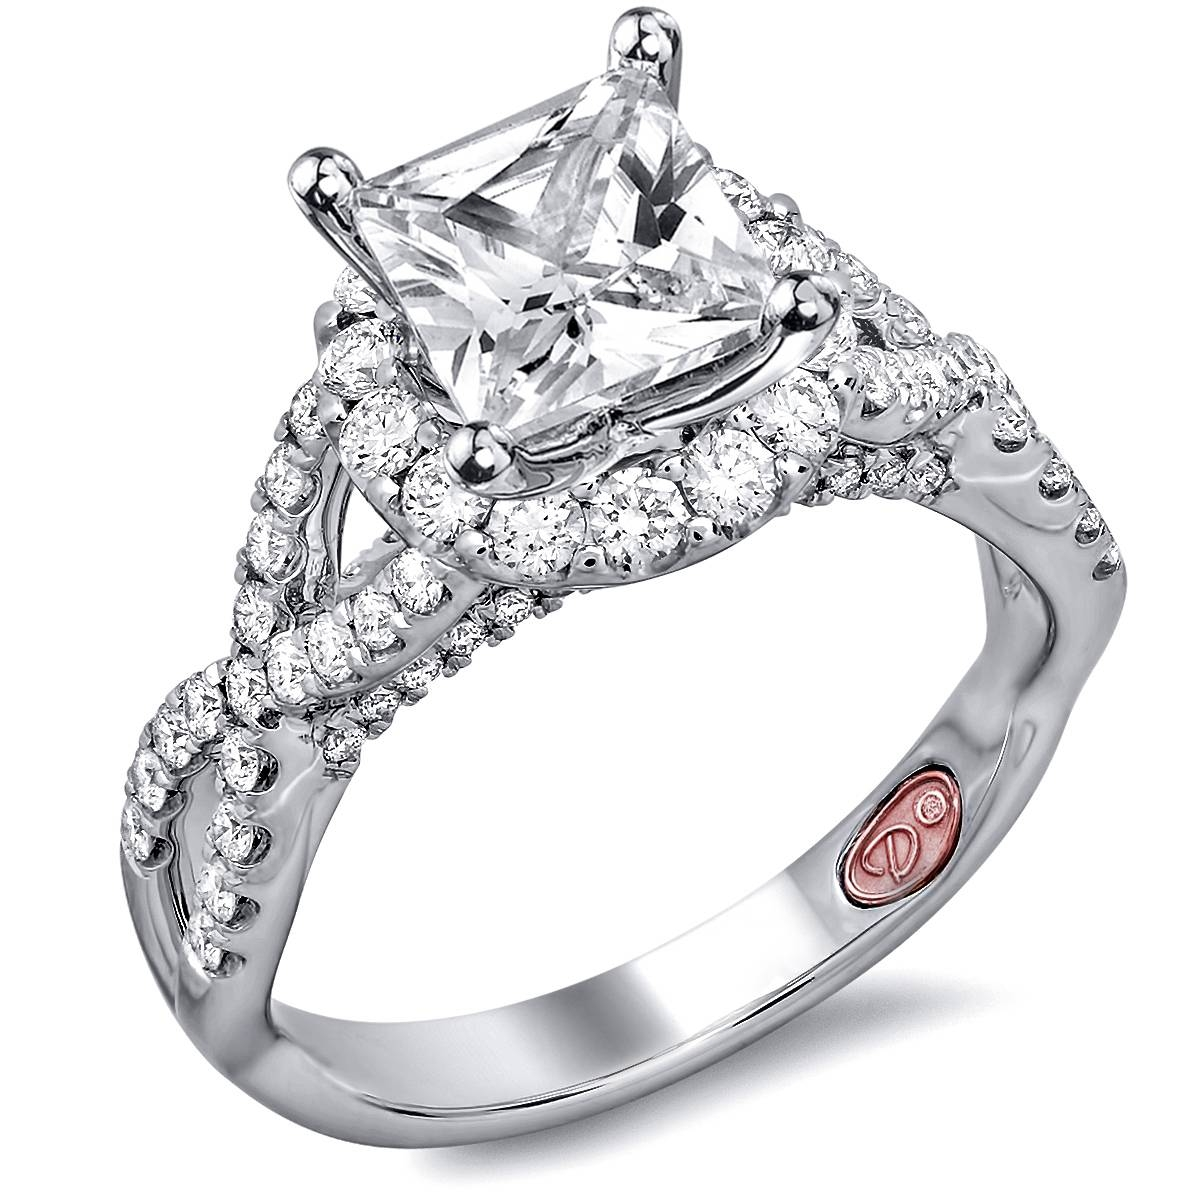 Twisted Princess Cut Engagement Rings | Demarco Bridal Jewelry With Regard To Unique Princess Cut Diamond Engagement Rings (Gallery 8 of 15)